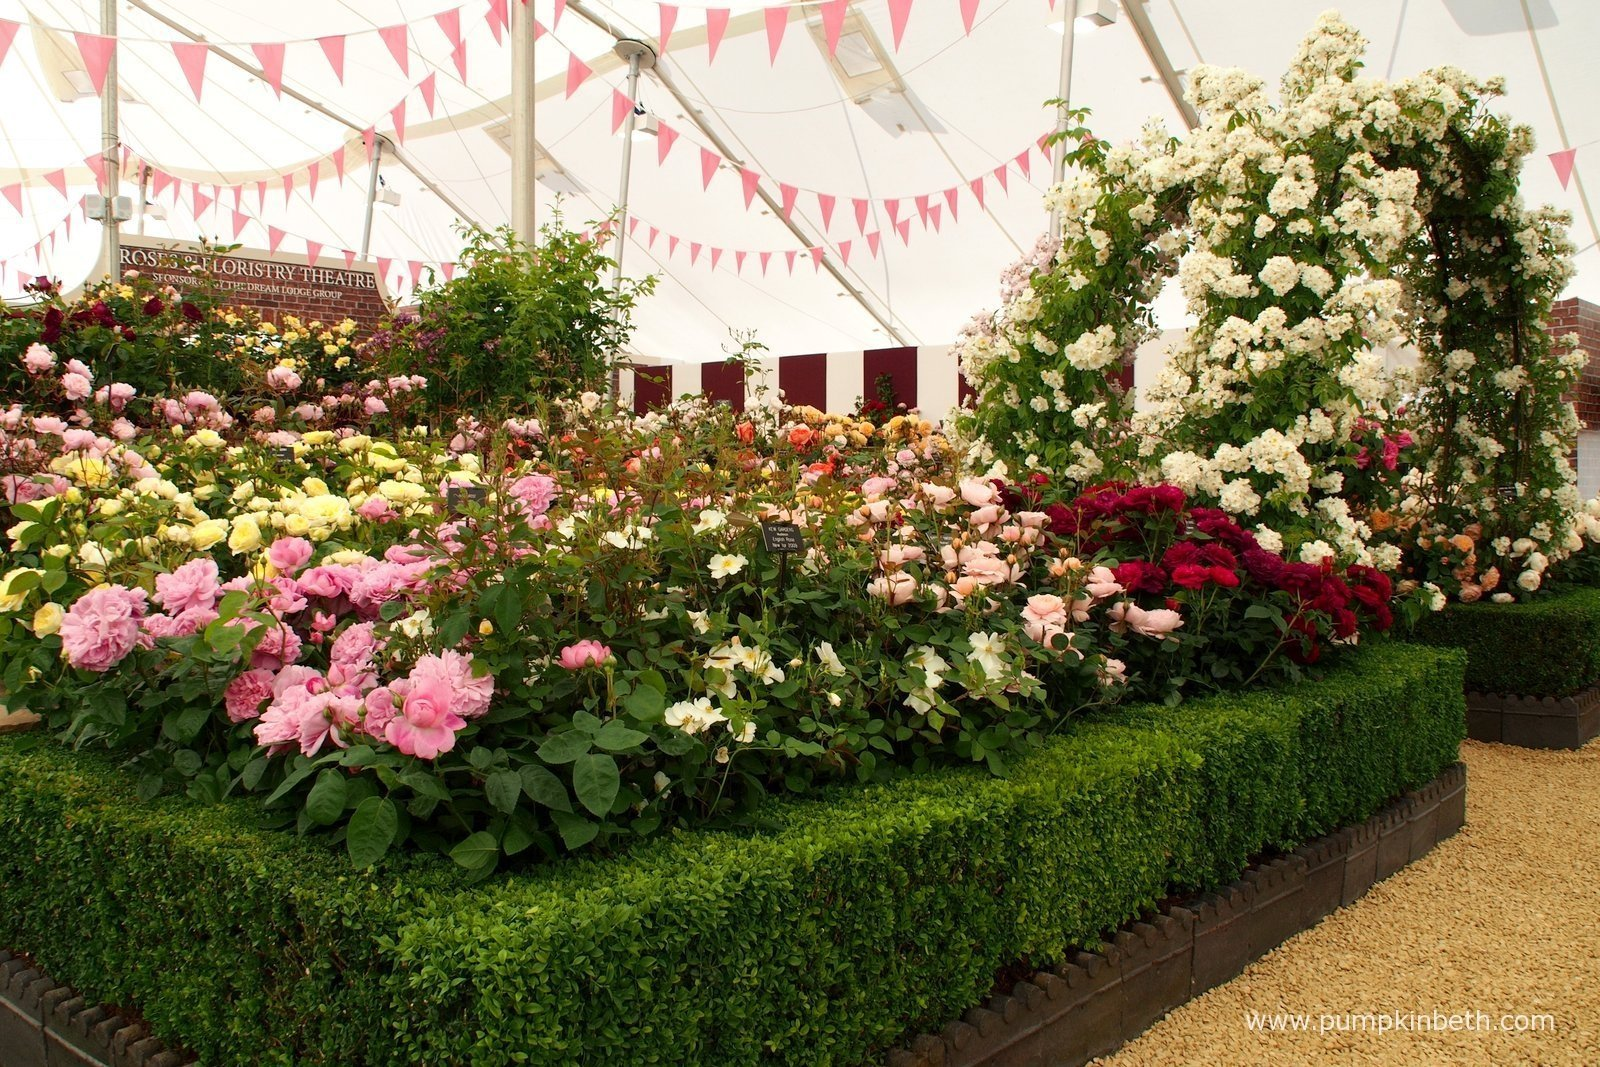 Rhs hampton court palace flower show 2015 pumpkin beth - Hampton court flower show ...